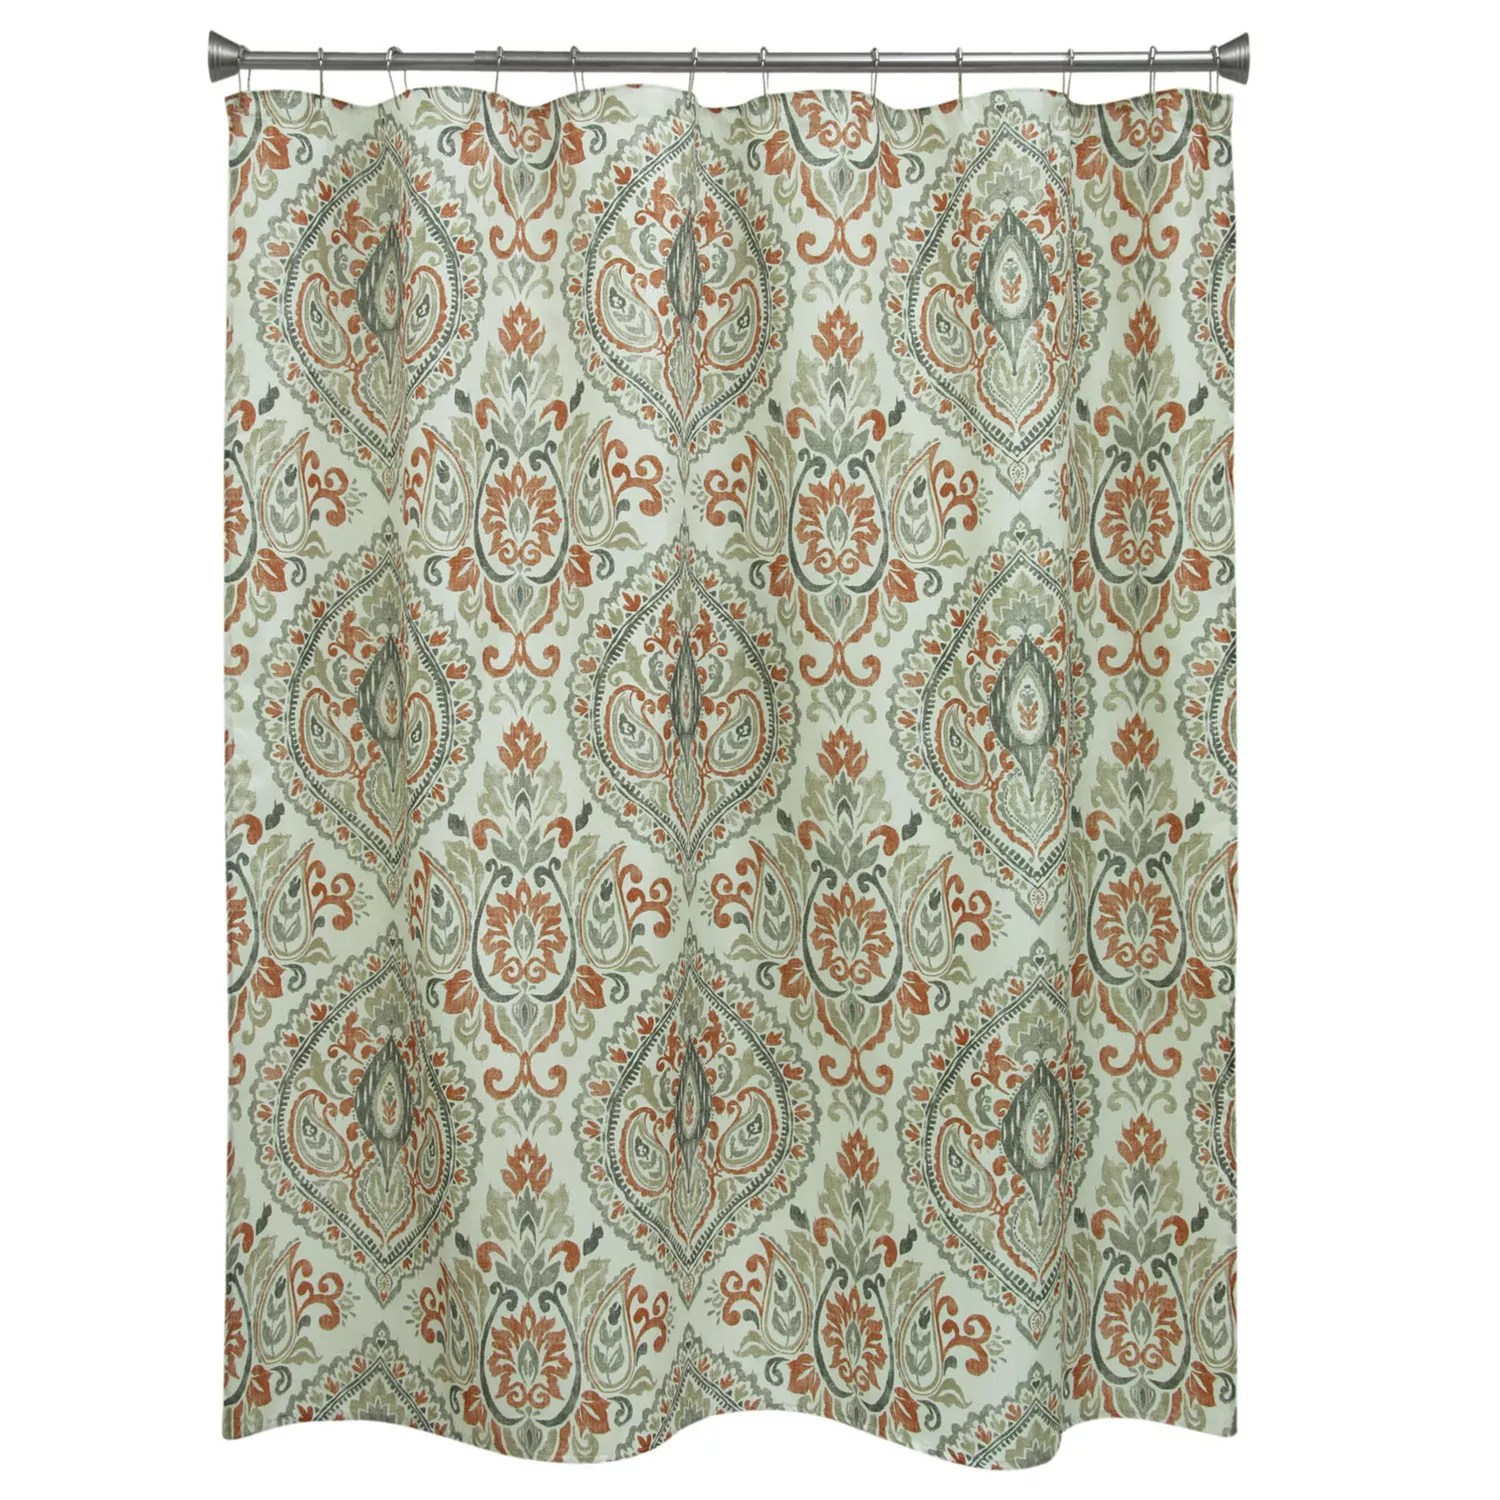 Kohls Com Shower Curtains Bacova Peyton Damask Shower Curtain Collection